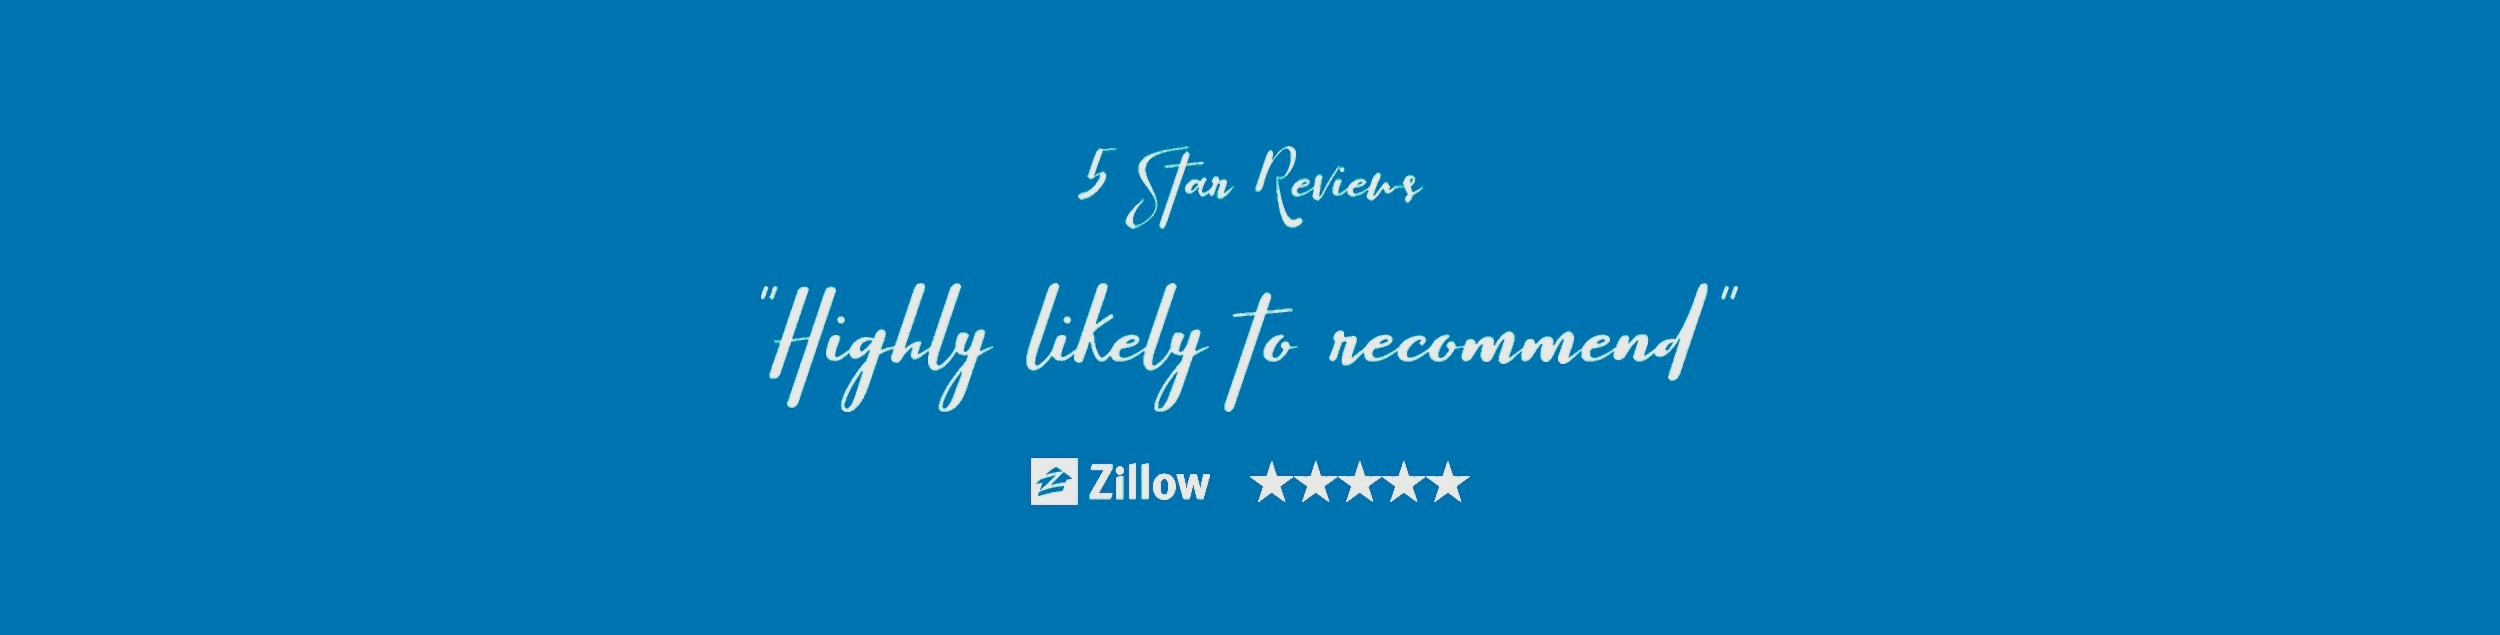 5-star-reviews-on-zillow-realtor-chicago-illinois.jpg